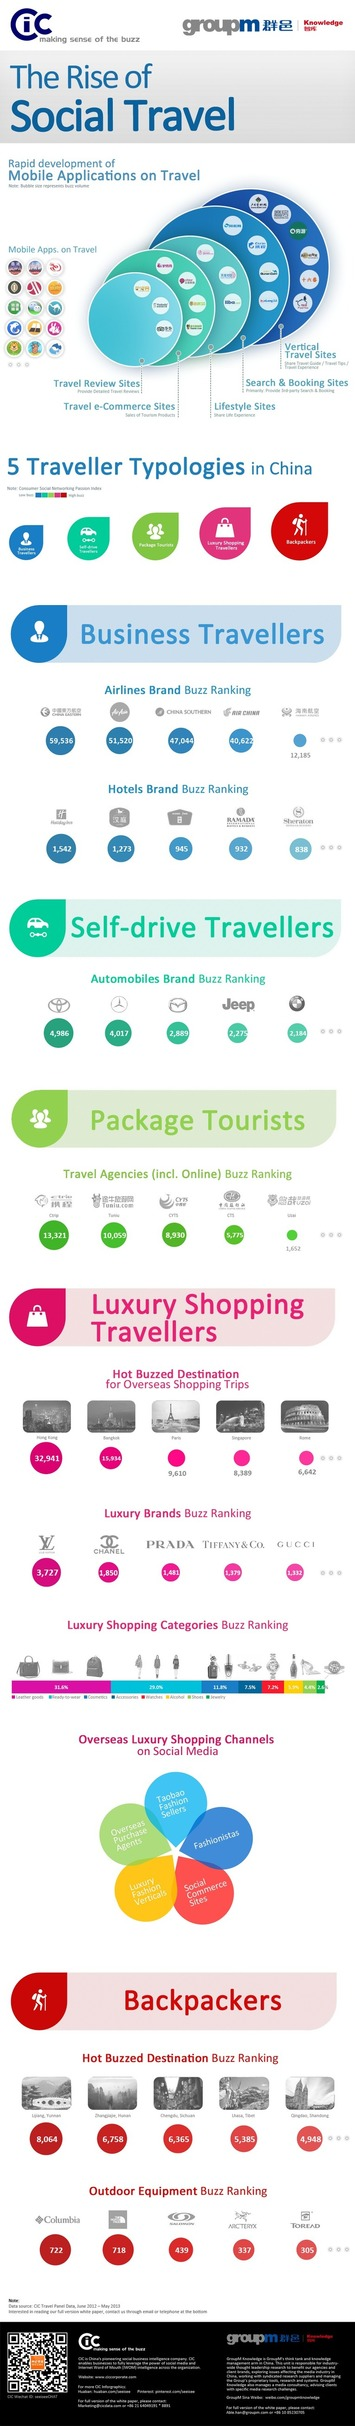 5 types of travellers among Chinese netizens | Travel Retail | Scoop.it